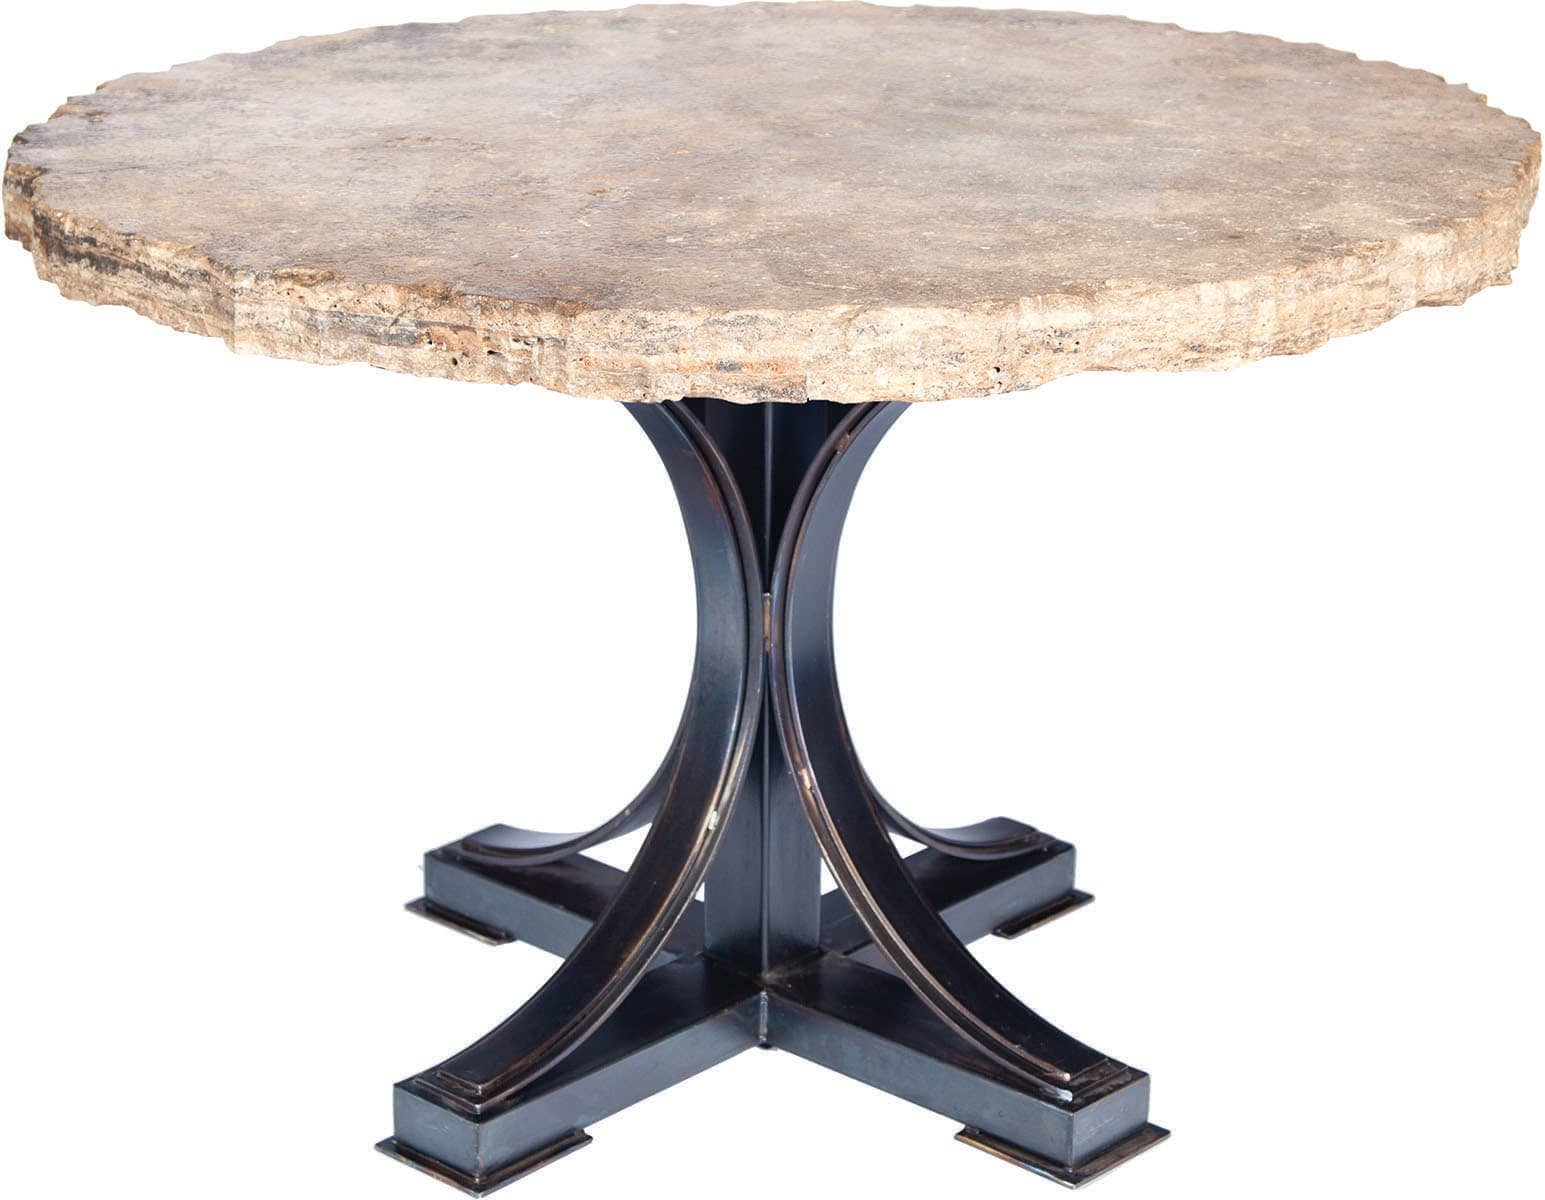 Prima Design Source Winston Dining Table With 60 Round Marble Top